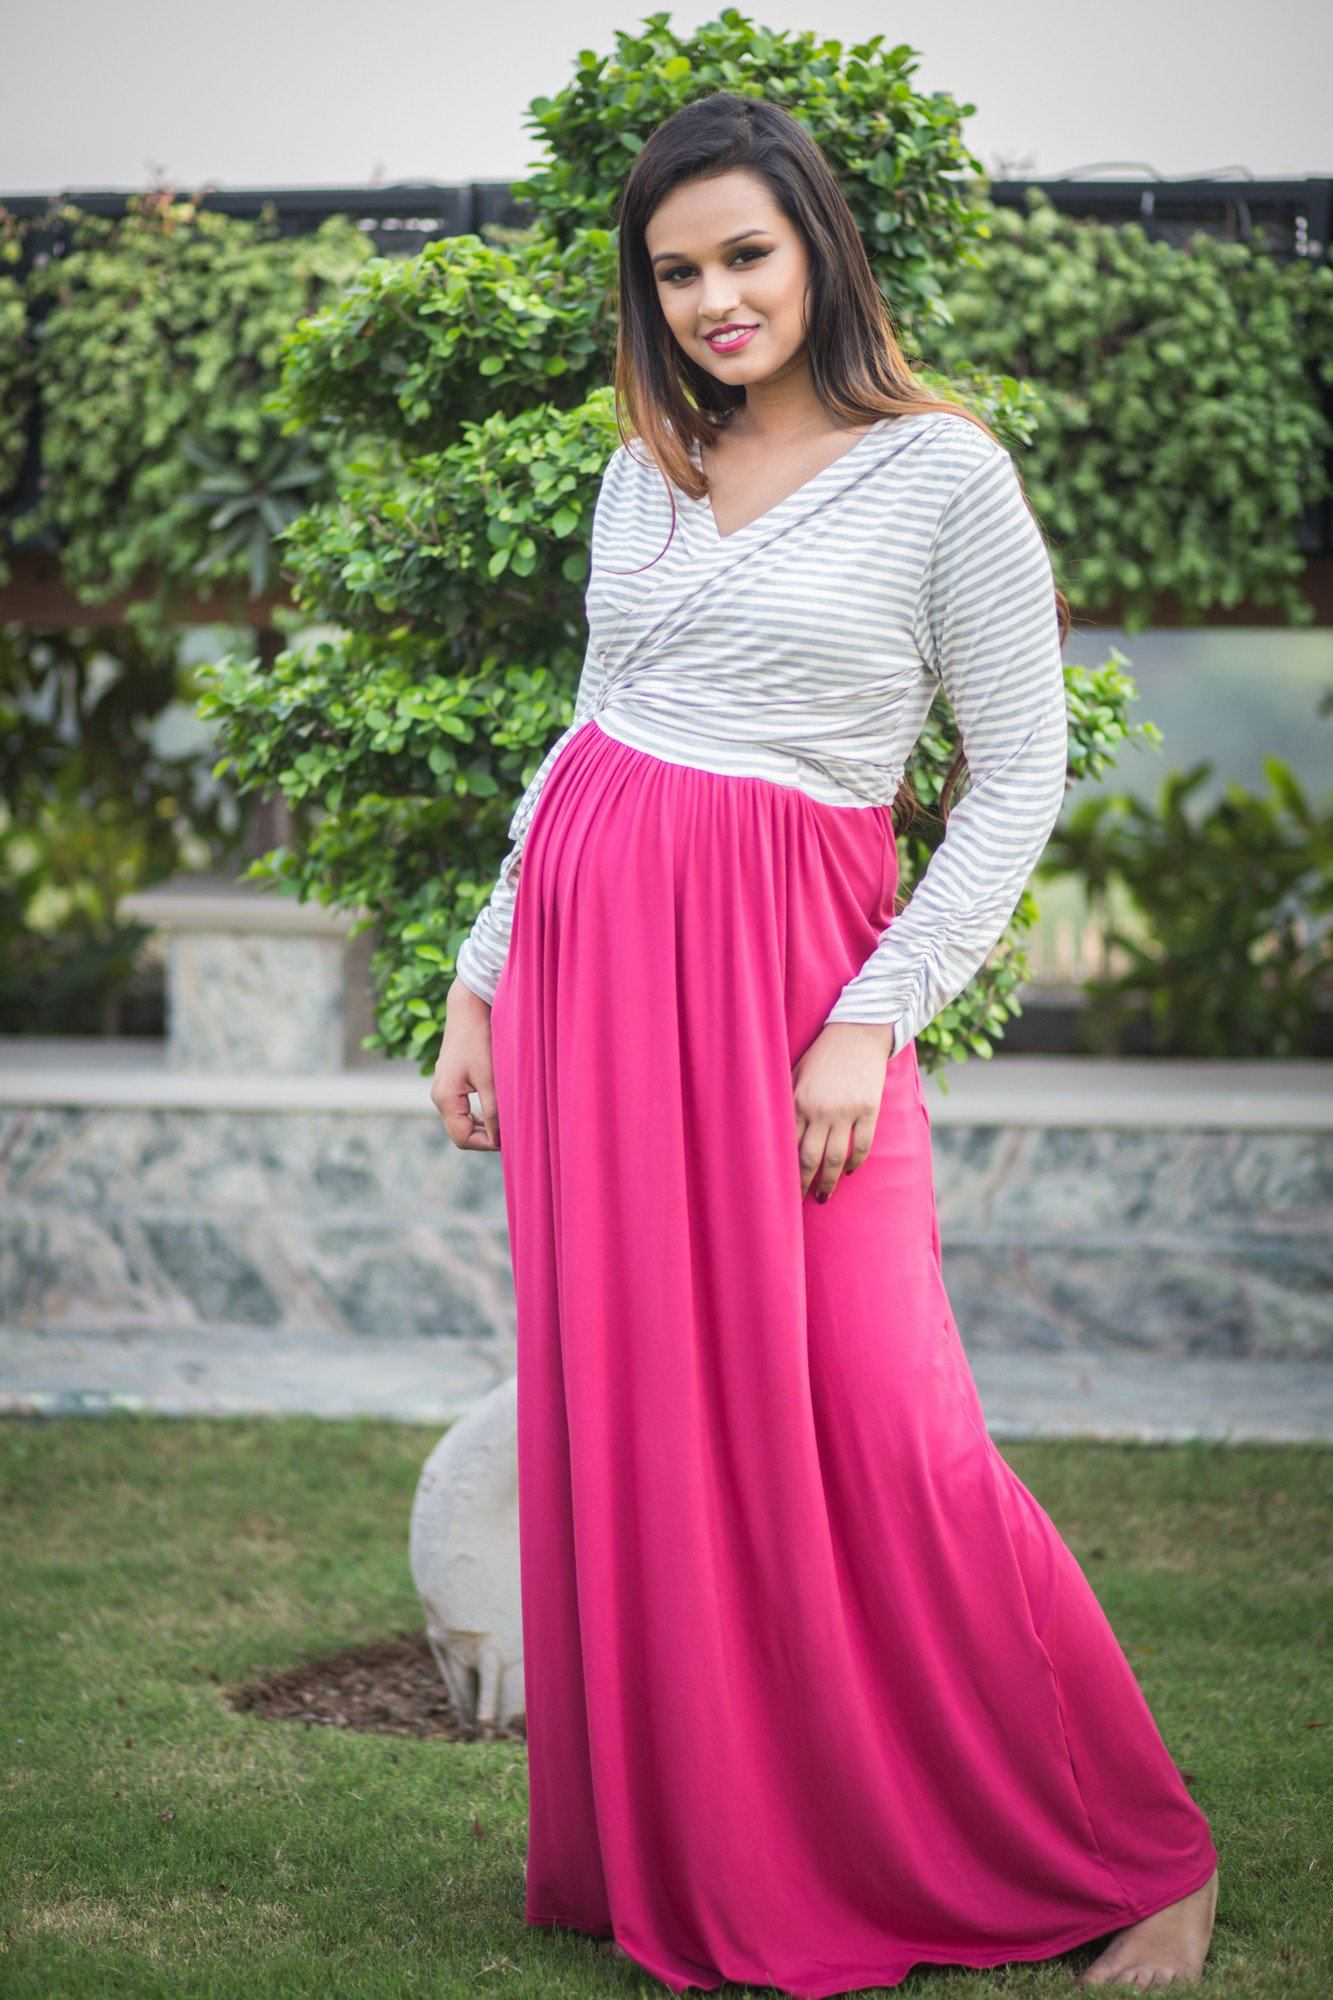 Buy maternity clothes pregnancy wear online india momzjoy buy maternity clothes pregnancy wear online india maternity feeding dress ombrellifo Gallery